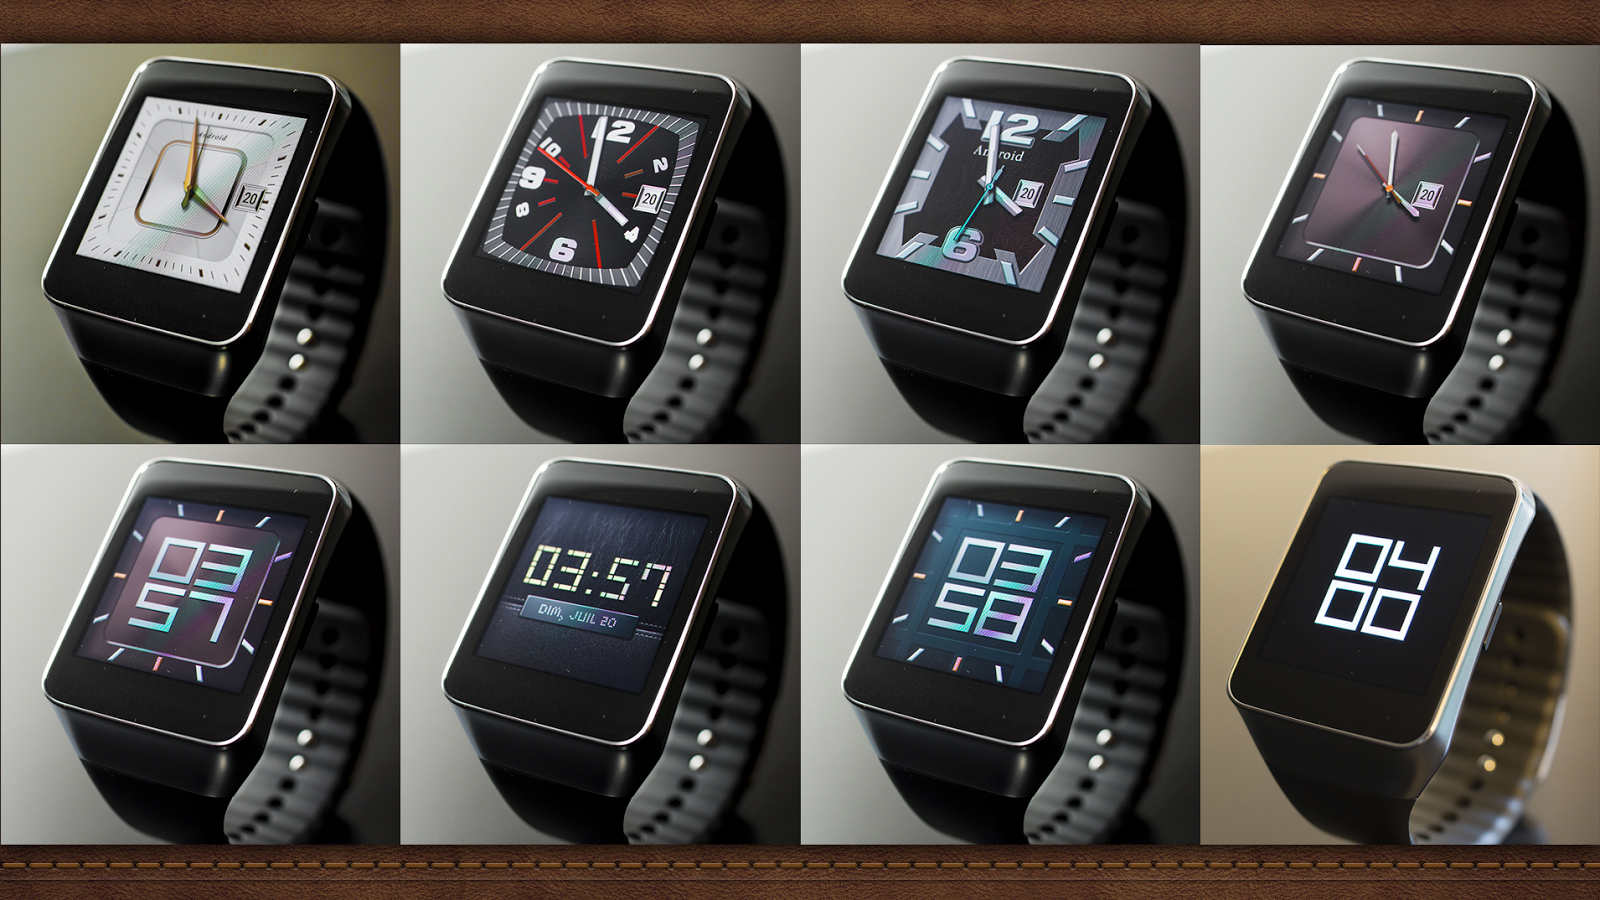 Designer android wear watchface - Wear Face Collection Cool Watch Faces From Analog To Digital Best Android Wear Apps